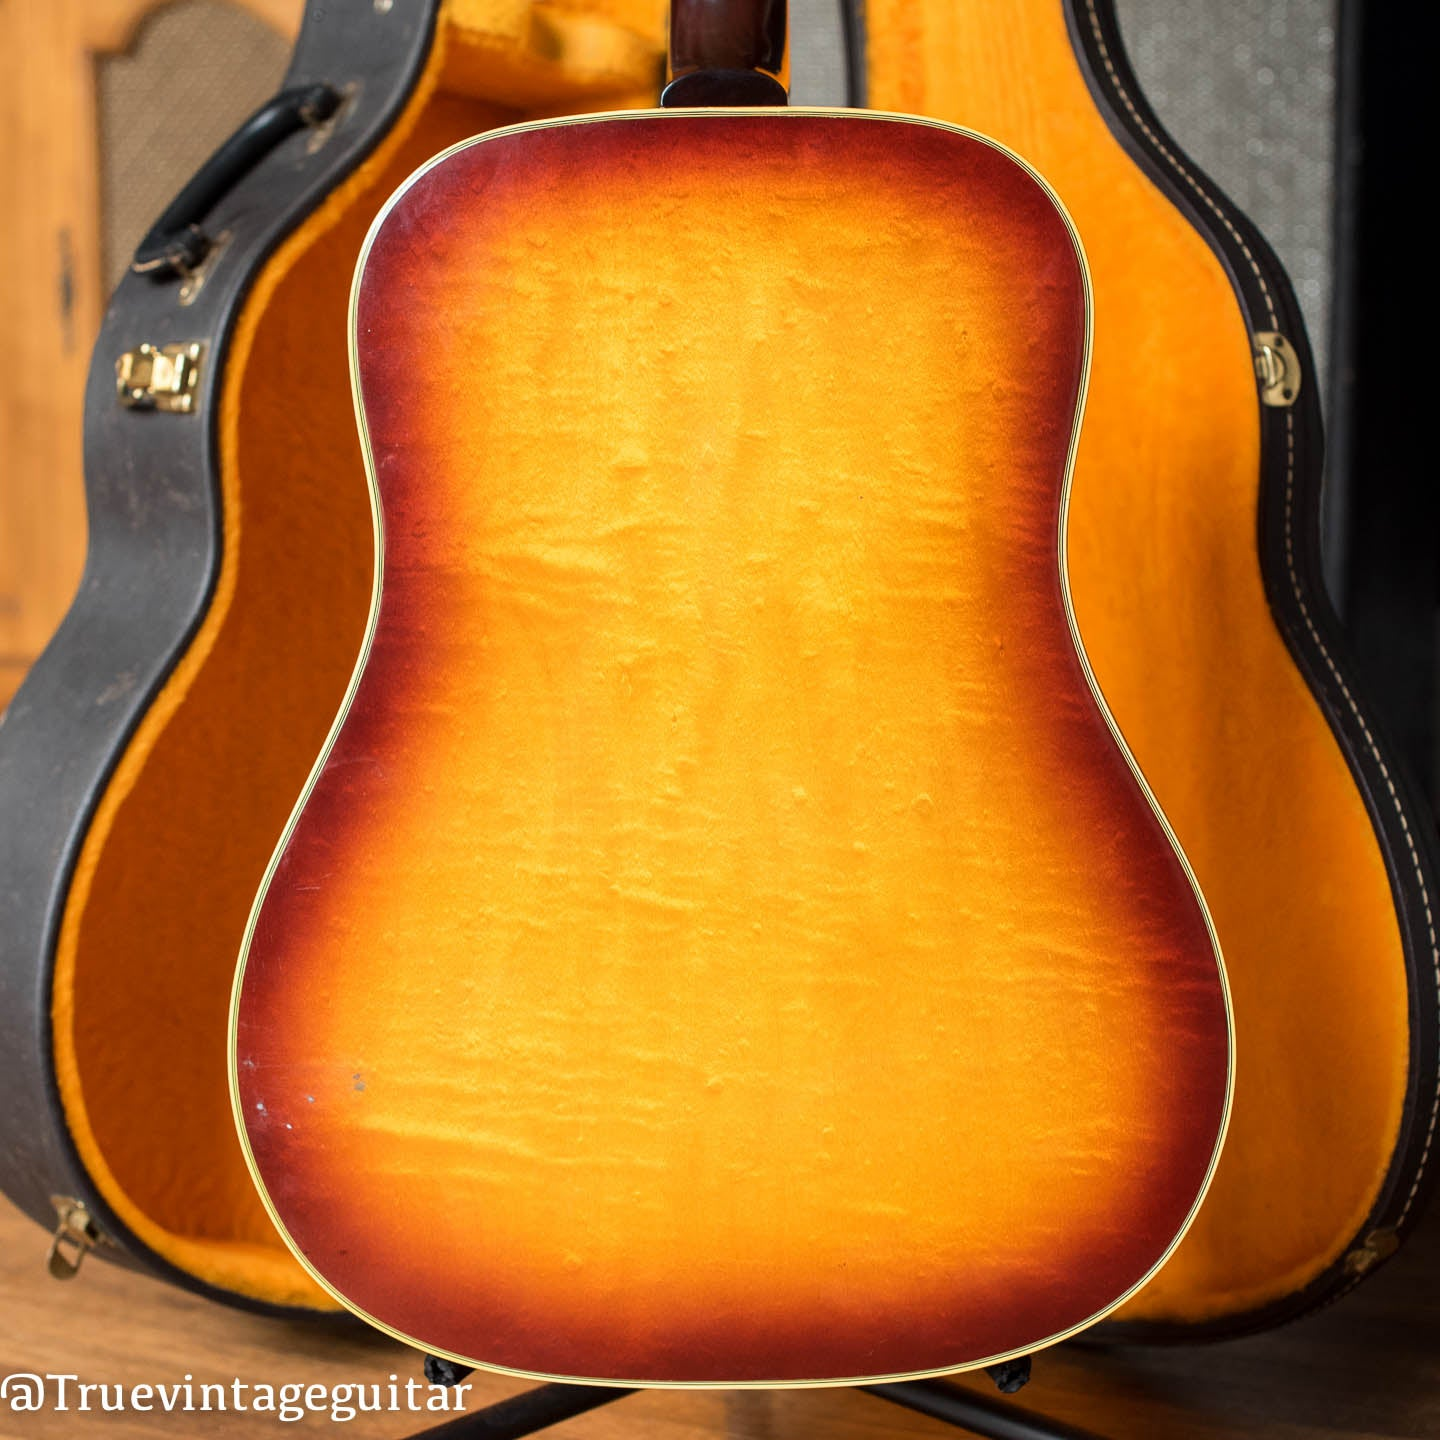 Flame Maple back, Vintage 1965 Epiphone FT-110 Frontier acoustic guitar